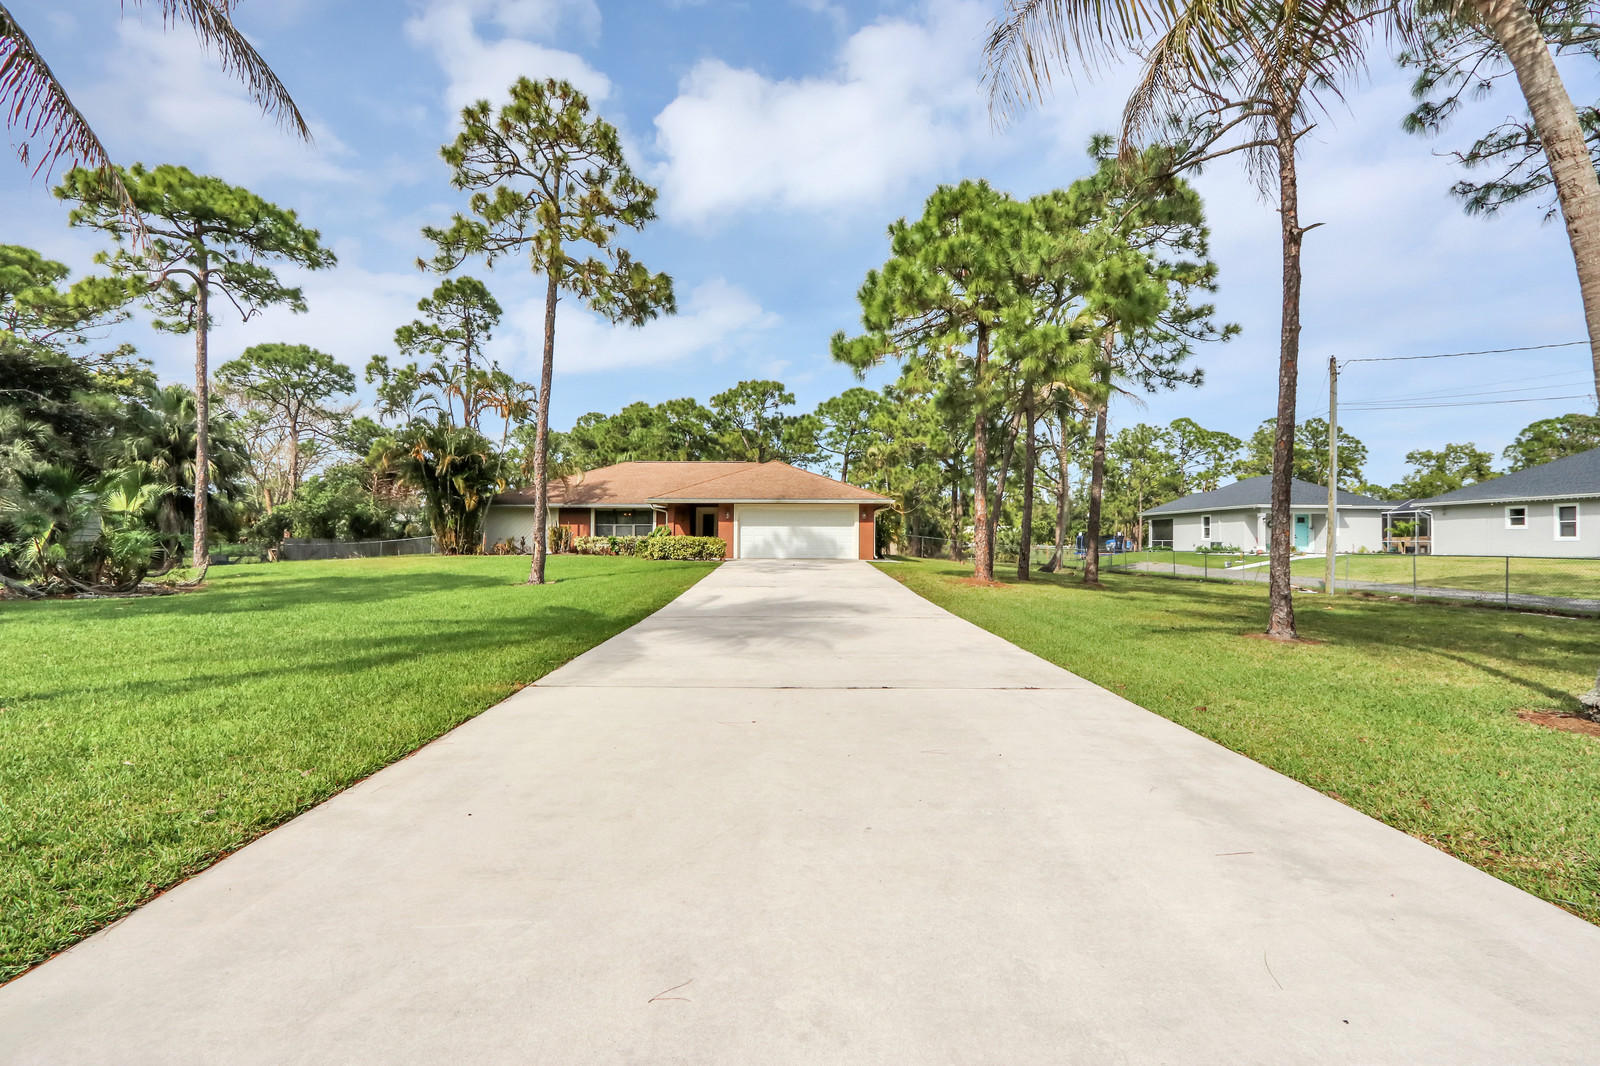 Home for sale in Loxahatchee / The Acreage West Palm Beach Florida